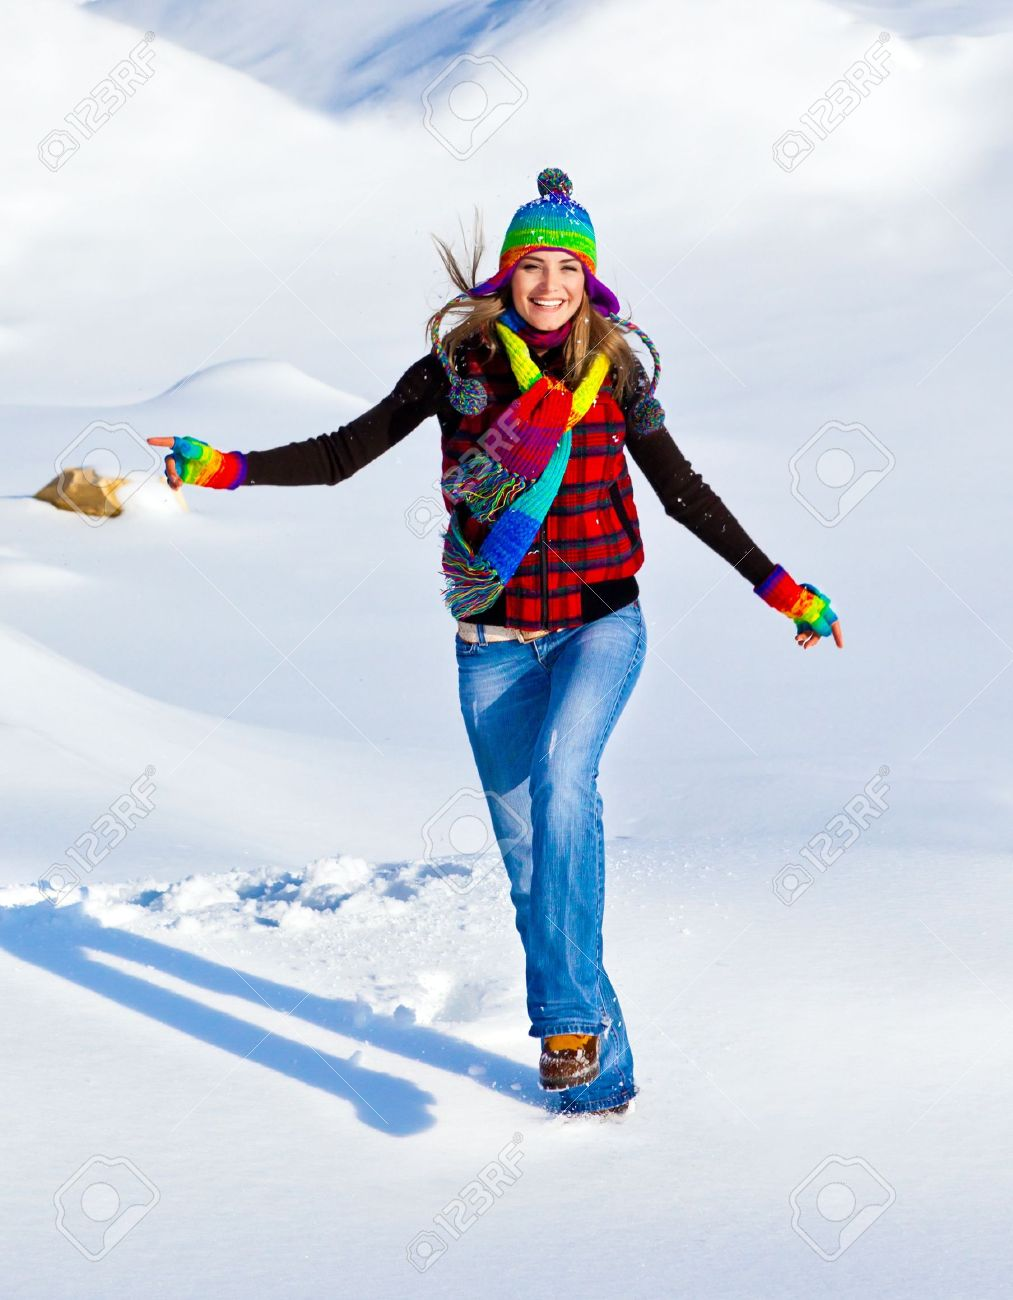 Happy girl running in the snow, teen outdoor winter activities, female having fun at Christmastime, woman wearing colorful clothes, freedom and nature joy concept Stock Photo - 11599872